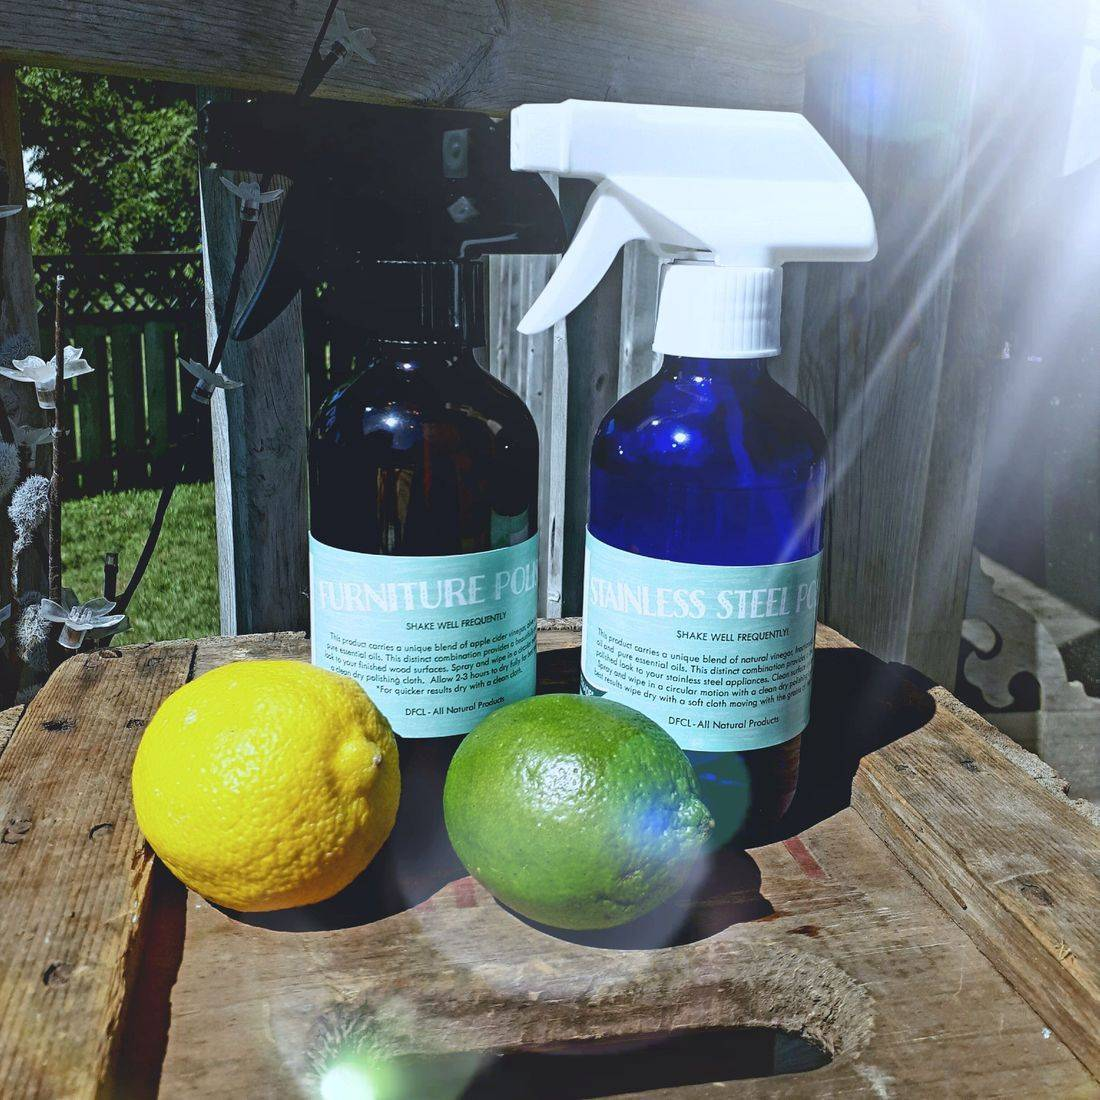 wood cleaner, furniture polish, natural cleaner, stainless steel polish, all natural polish